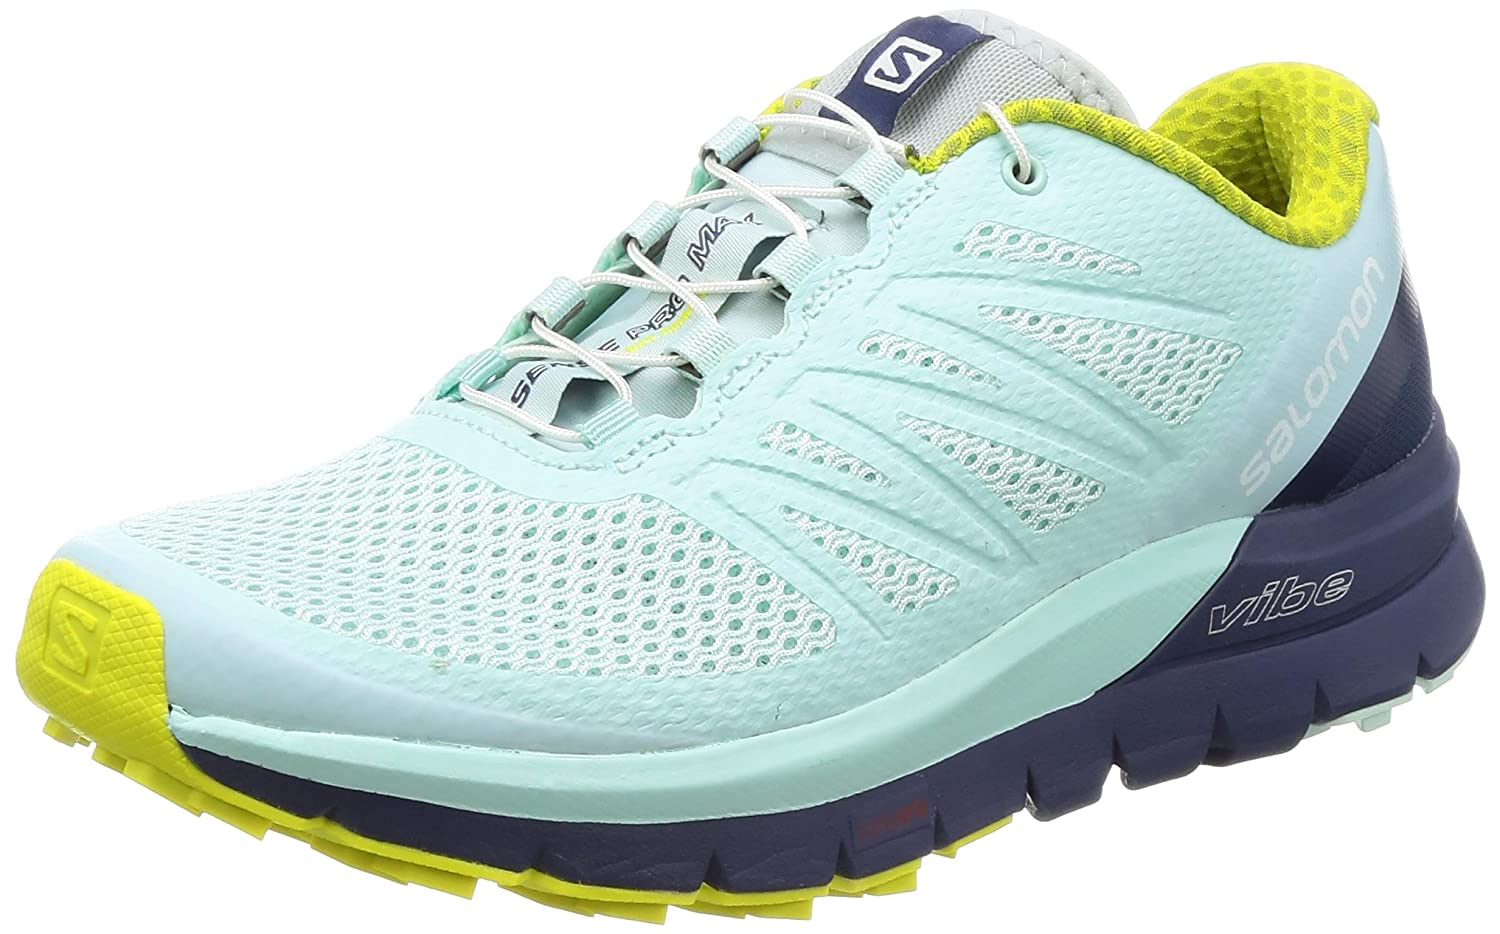 Salomon Women's Sense Pro Max Manmade, Mesh Trail Running Sneakers B01HD1UTQI 9.5 B(M) US|Fair Aqua, Crown Blue, Sulphur Spring